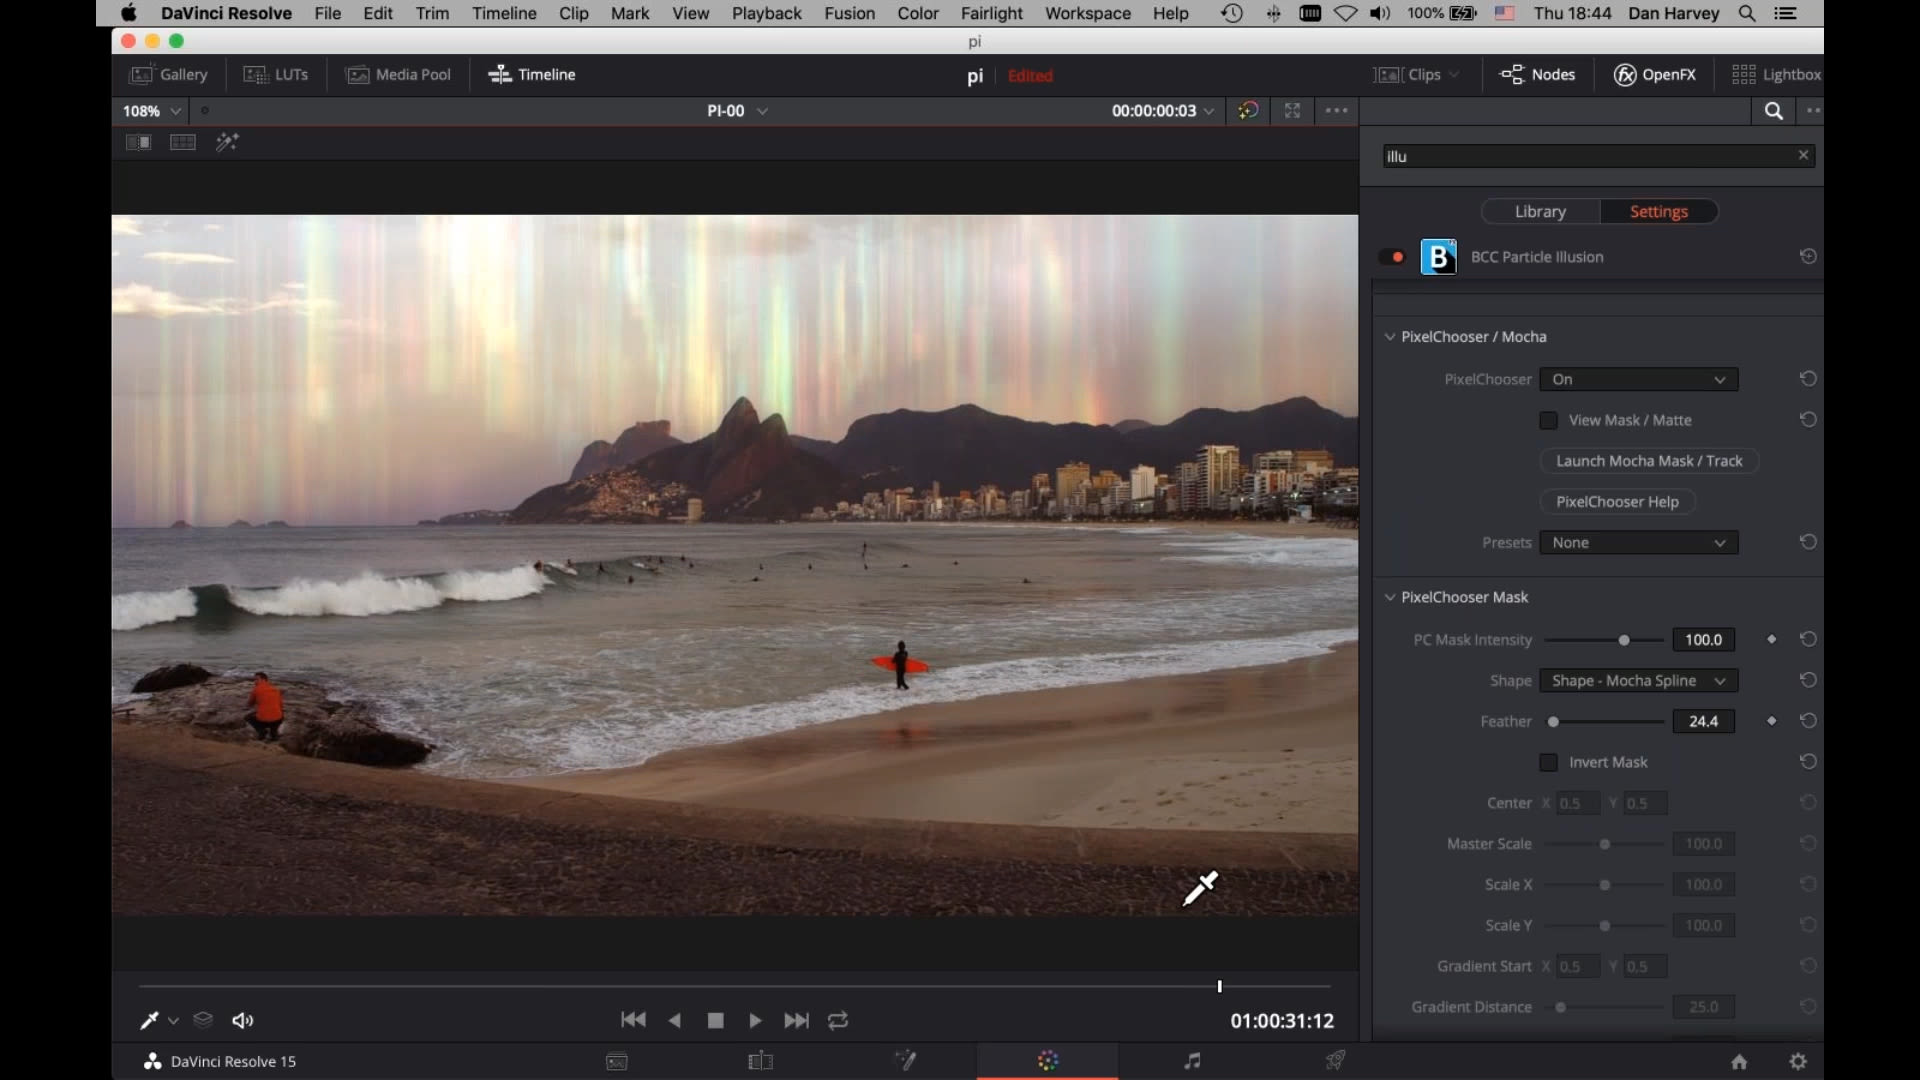 Buy Boris Continuum Complete 8 For Adobe Ae And Prpro 64-Bit